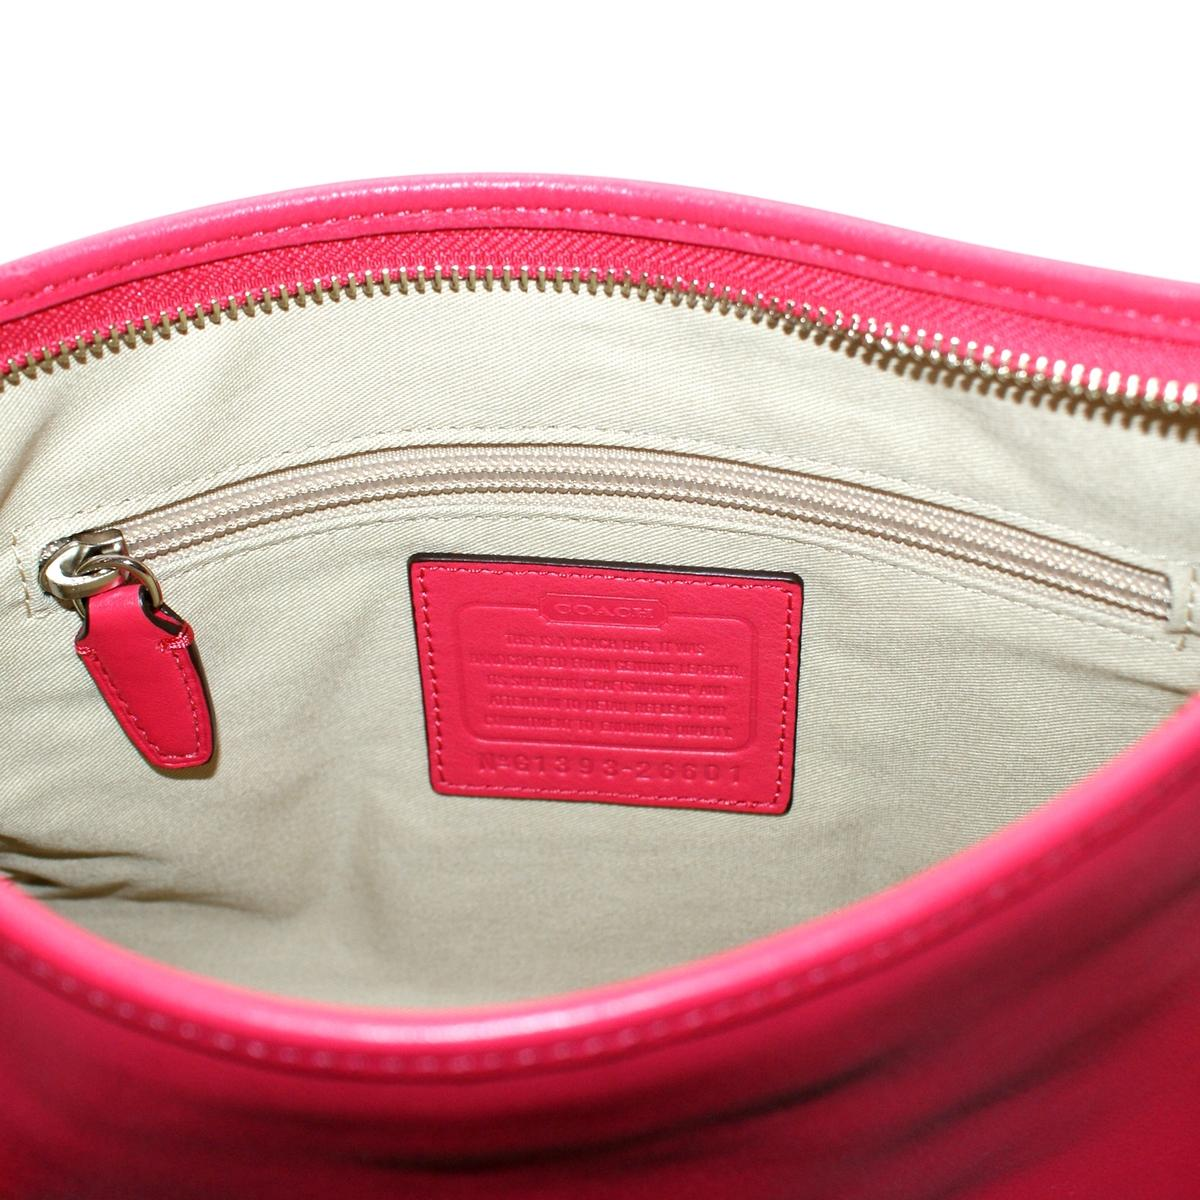 Home · Coach · Legacy Leather Double Gusset Leather Handbag  Crossbody Pink  Scarlet. CLICK THUMBNAIL TO ZOOM. Found ... d2a5f313f64f1